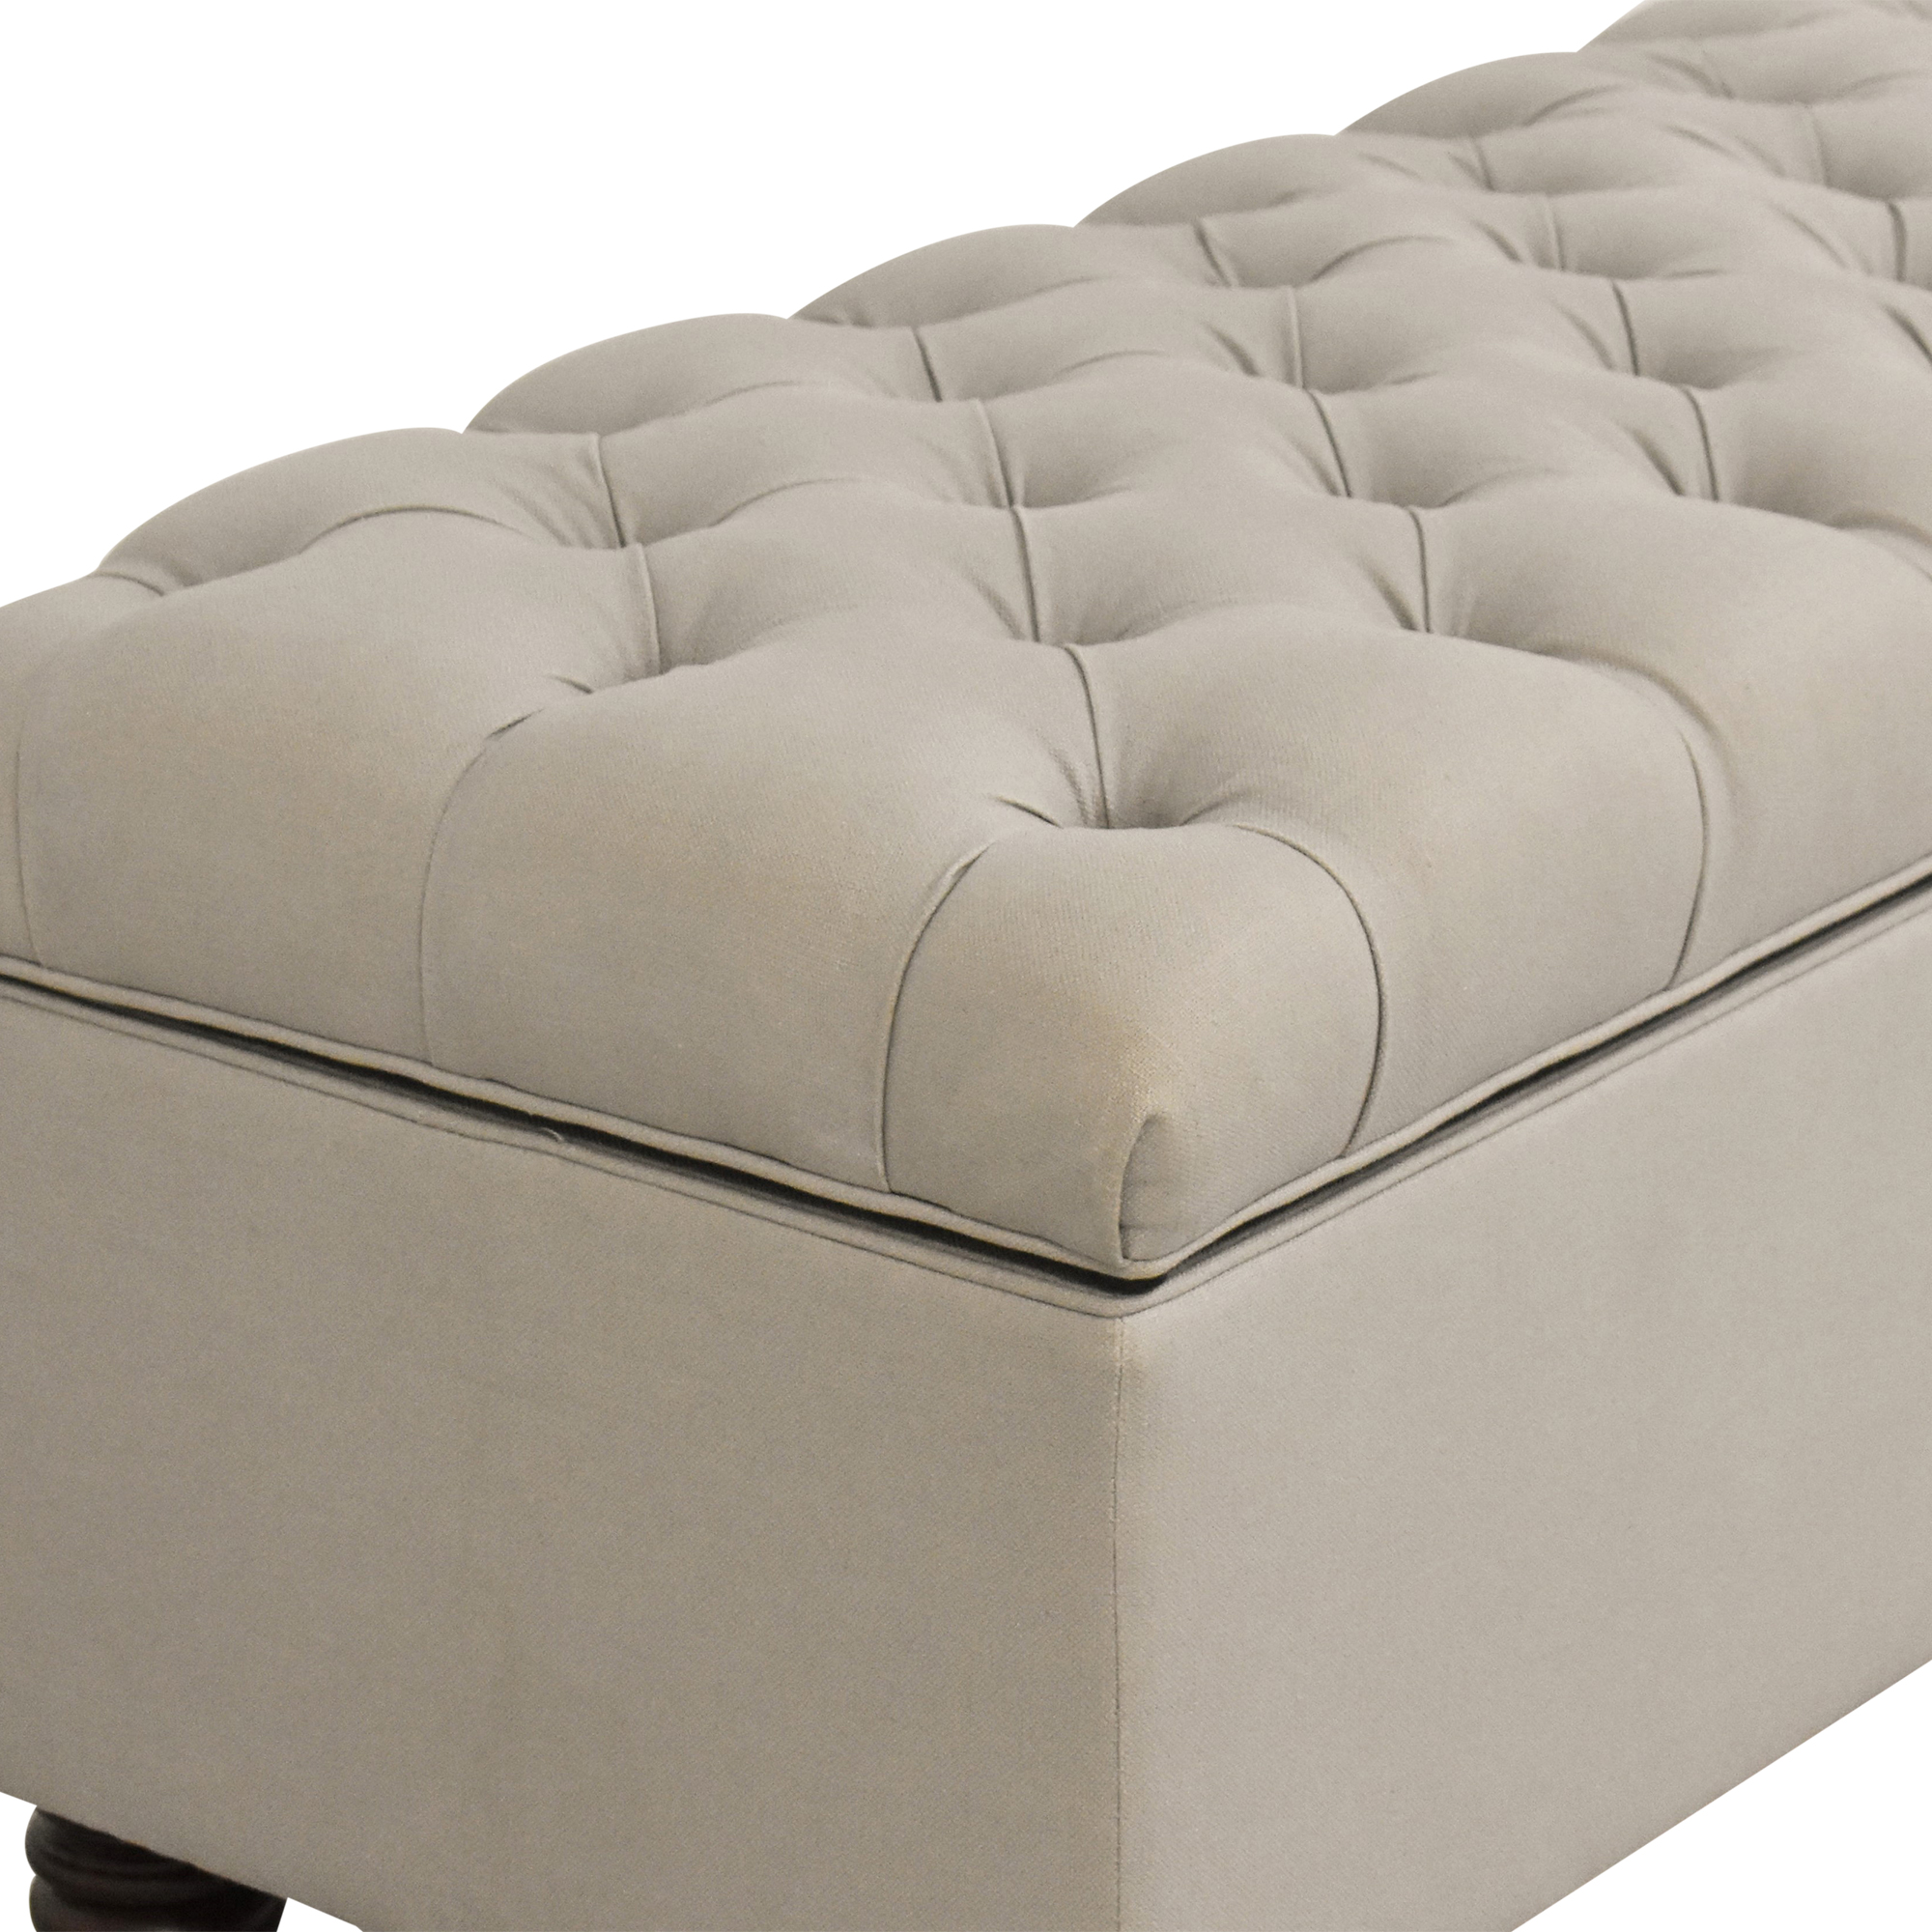 Pottery Barn Pottery Barn Lorraine Tufted Upholstered Queen Storage Bench on sale